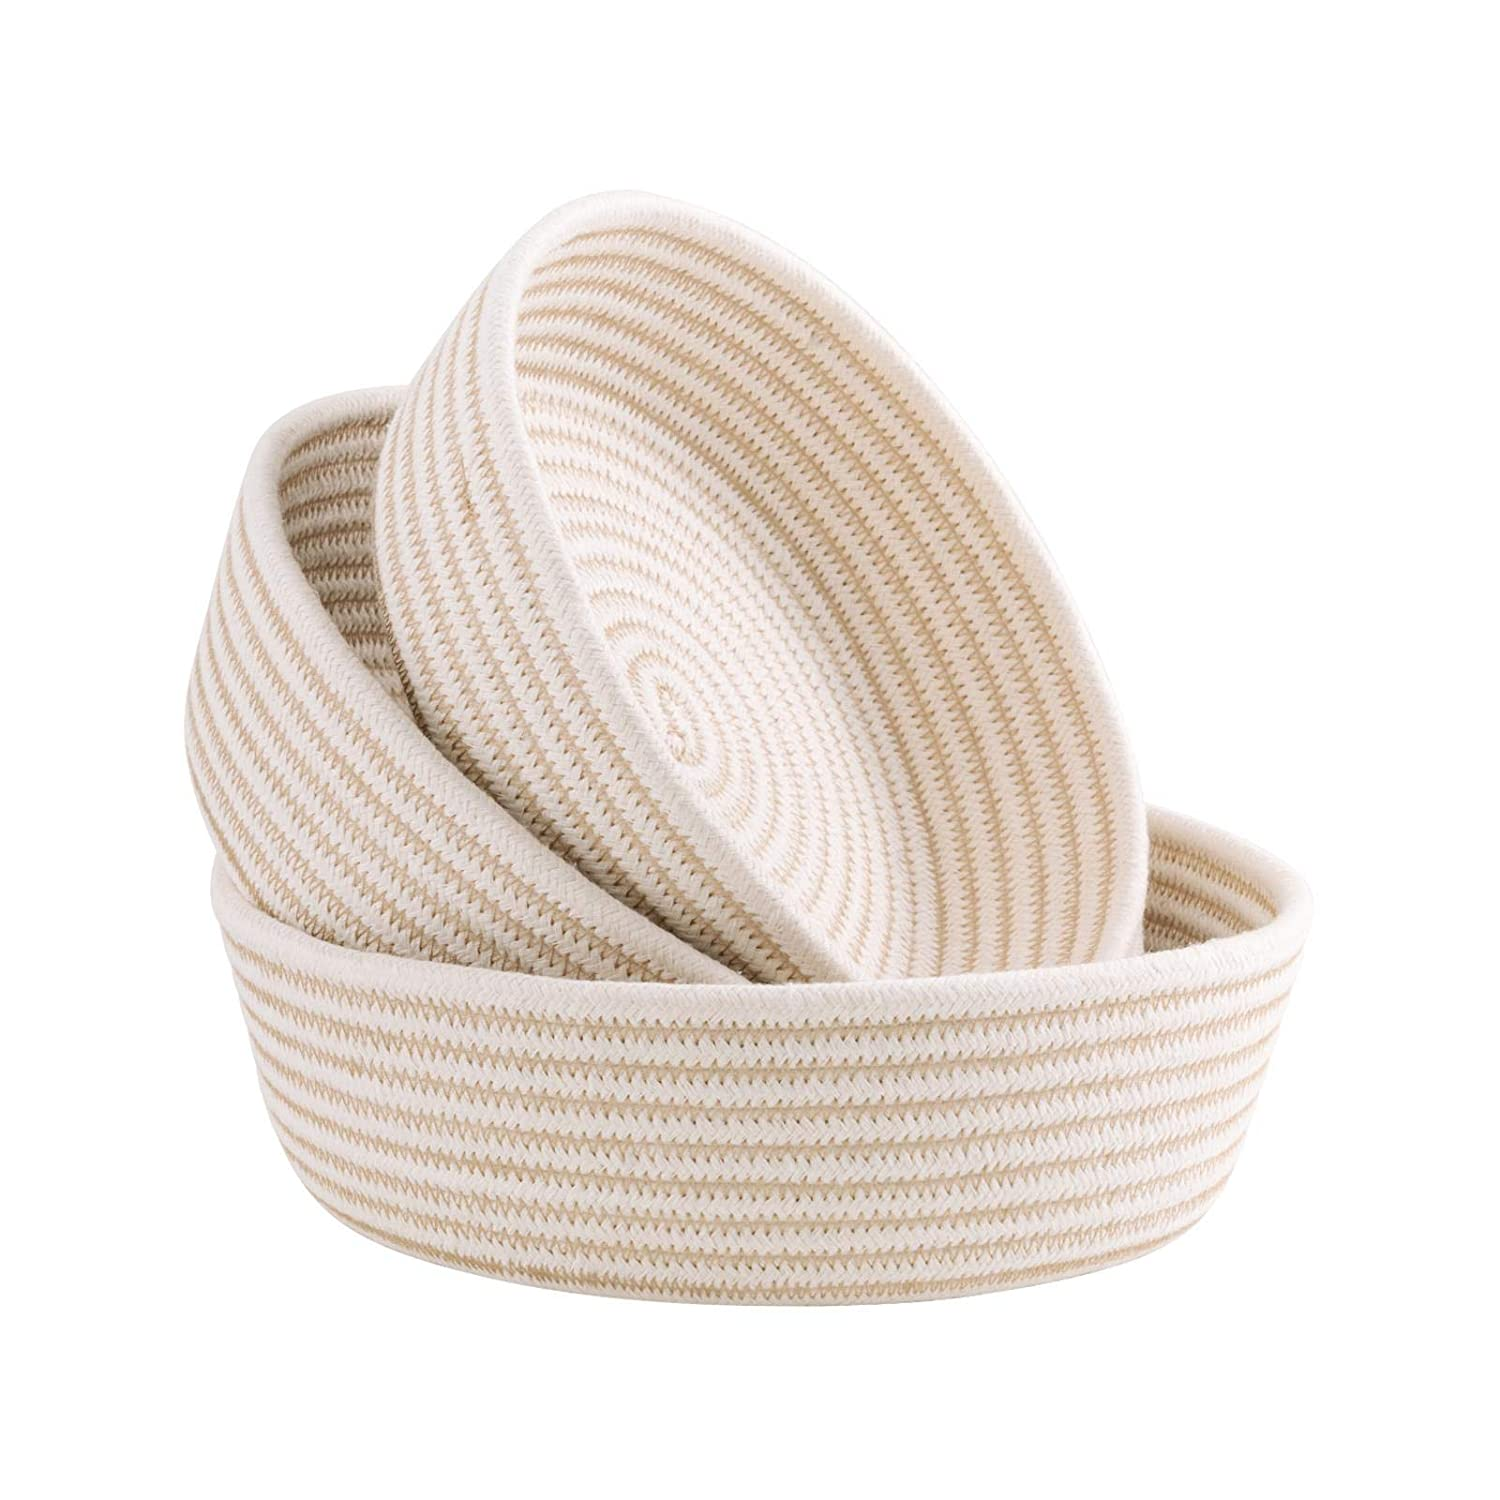 UBBCARE Small Woven Storage Baskets on Table Top Key Pet Toy Storage Bowls Decorative Cotton Rope Trays for Shelves, Entryway and Coffee Table Set of 3